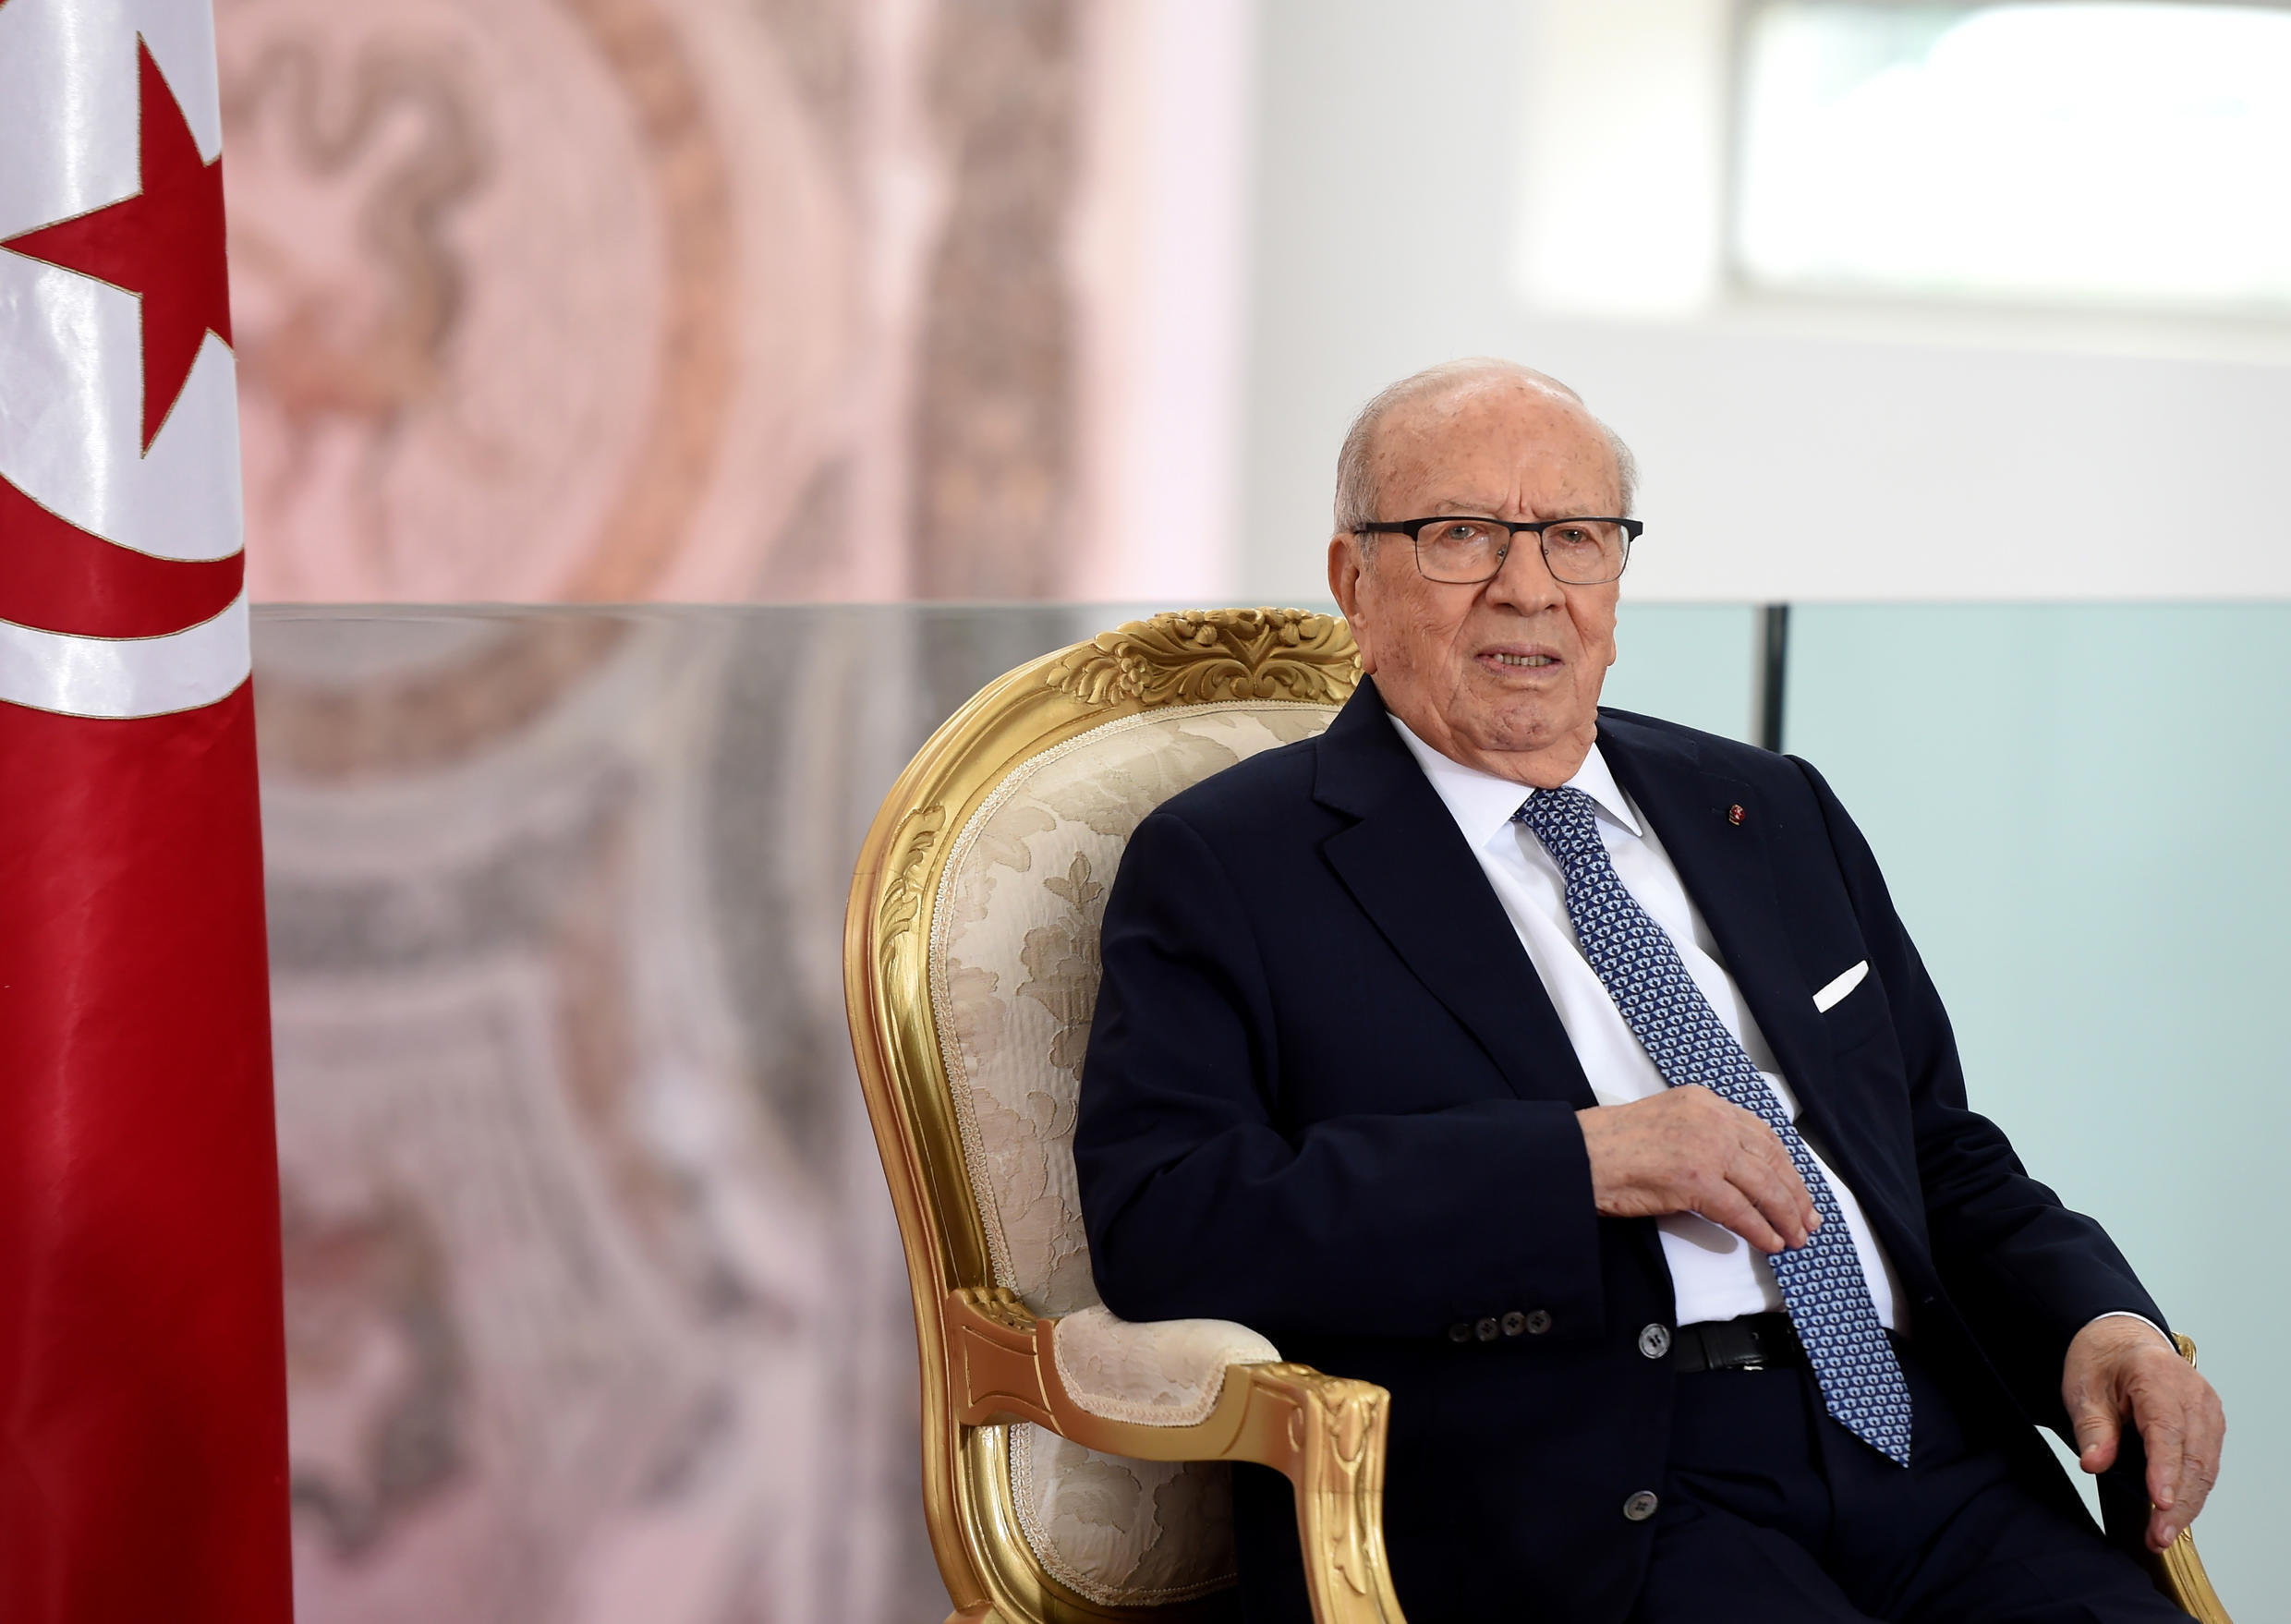 Tunisia's President Beji Caid Essebsi at a ceremony in honour of the victims who died in the terrorist attack on the national Bardo Museum, Tunis, 18 November 2016